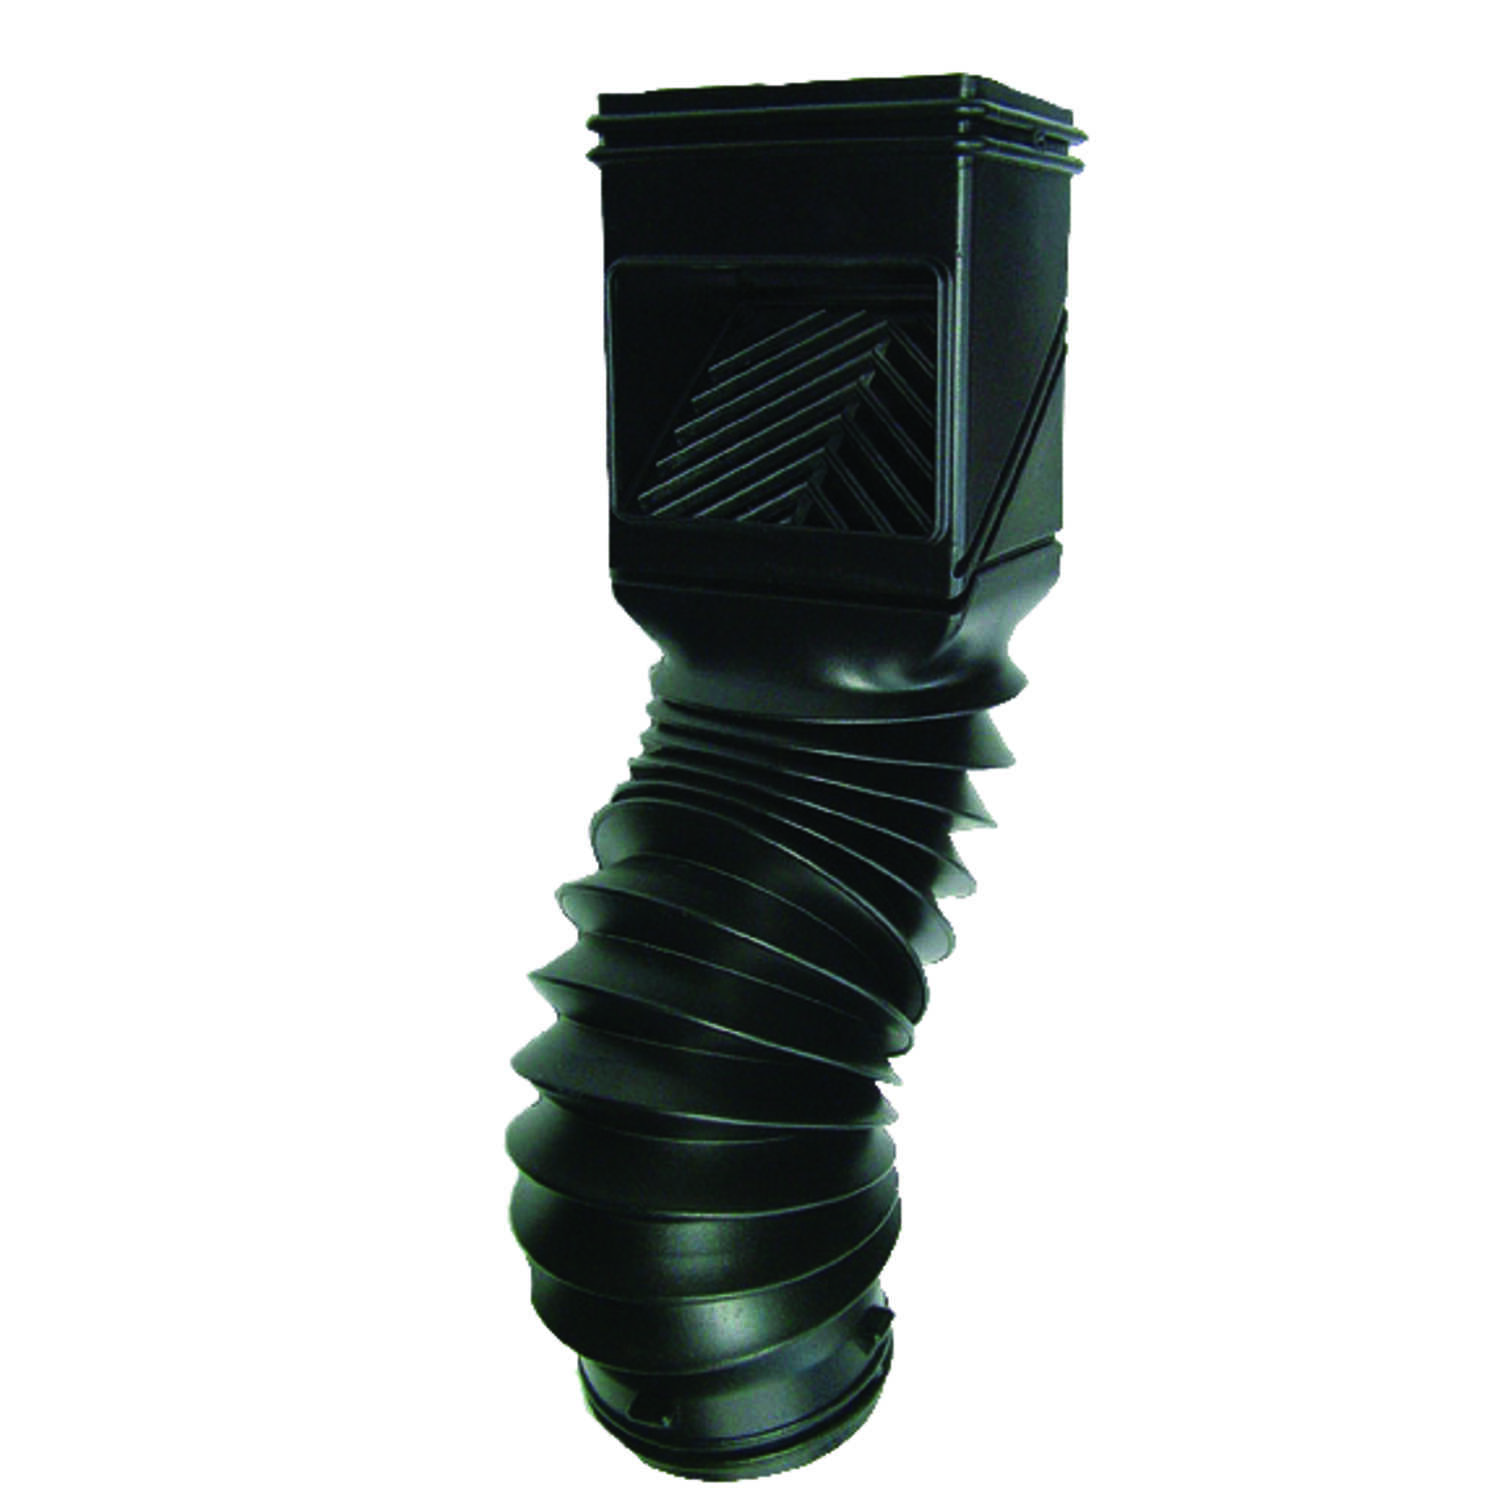 Invisaflow  4 in. L x 2 in. W Black  Plastic  Downspout Filter